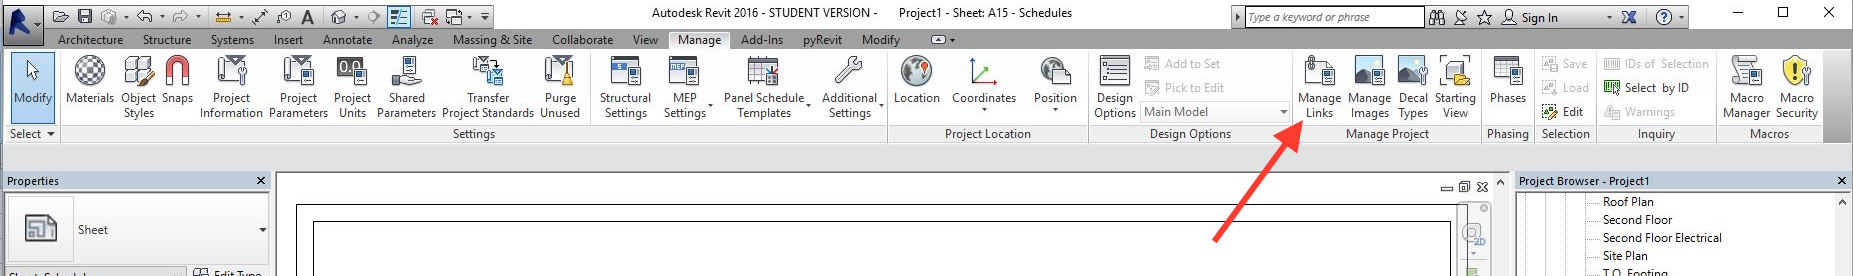 15 Revit Manage Links.JPG